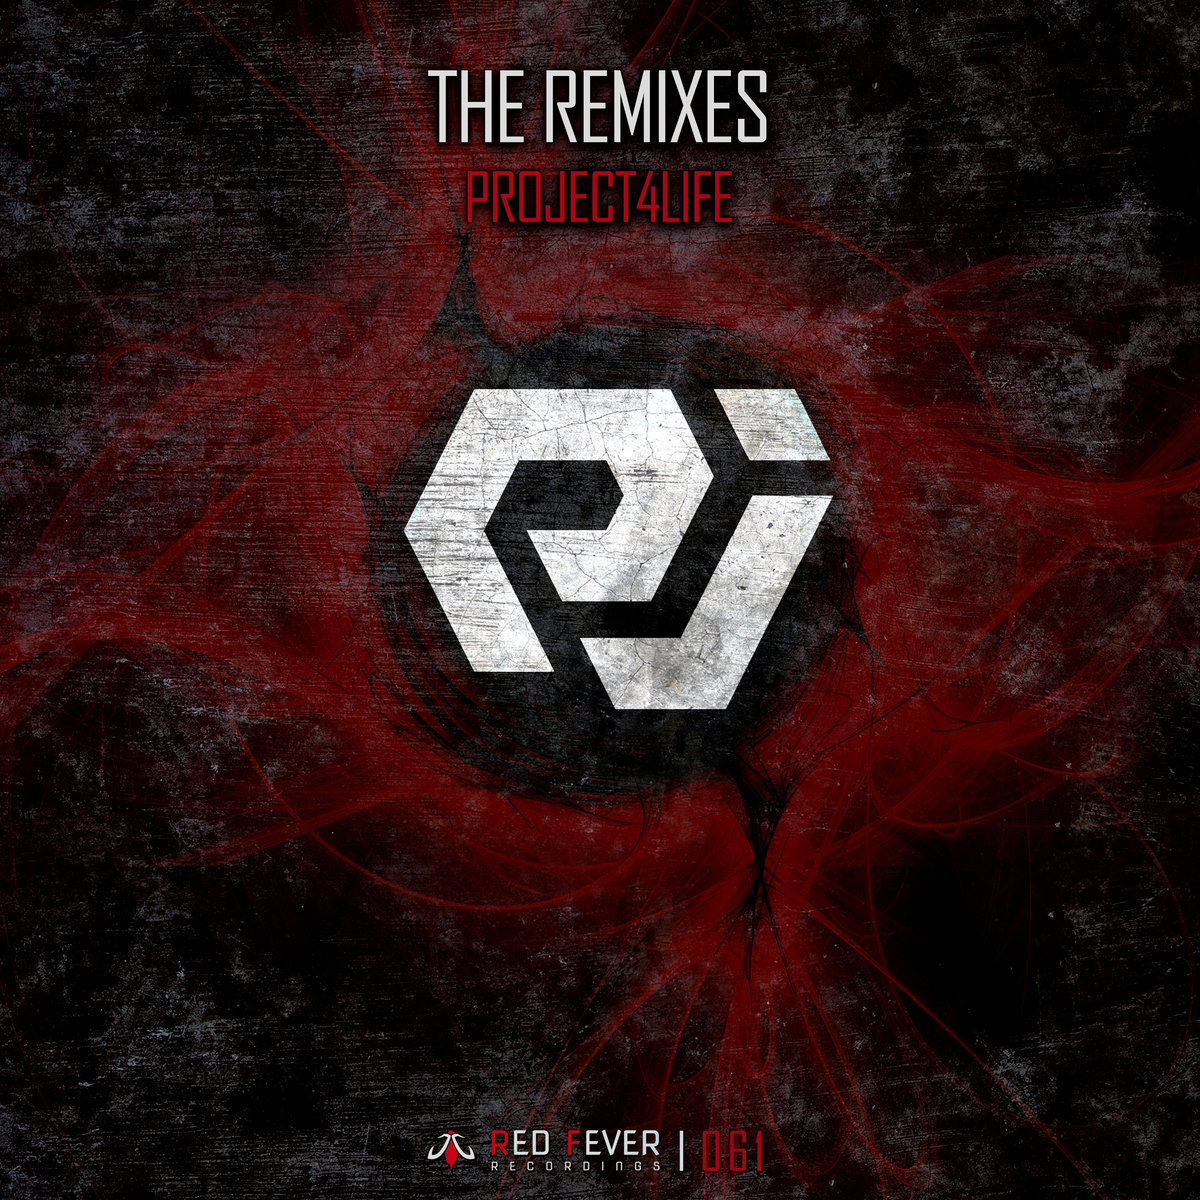 Project4life - The Remixes (artwork)